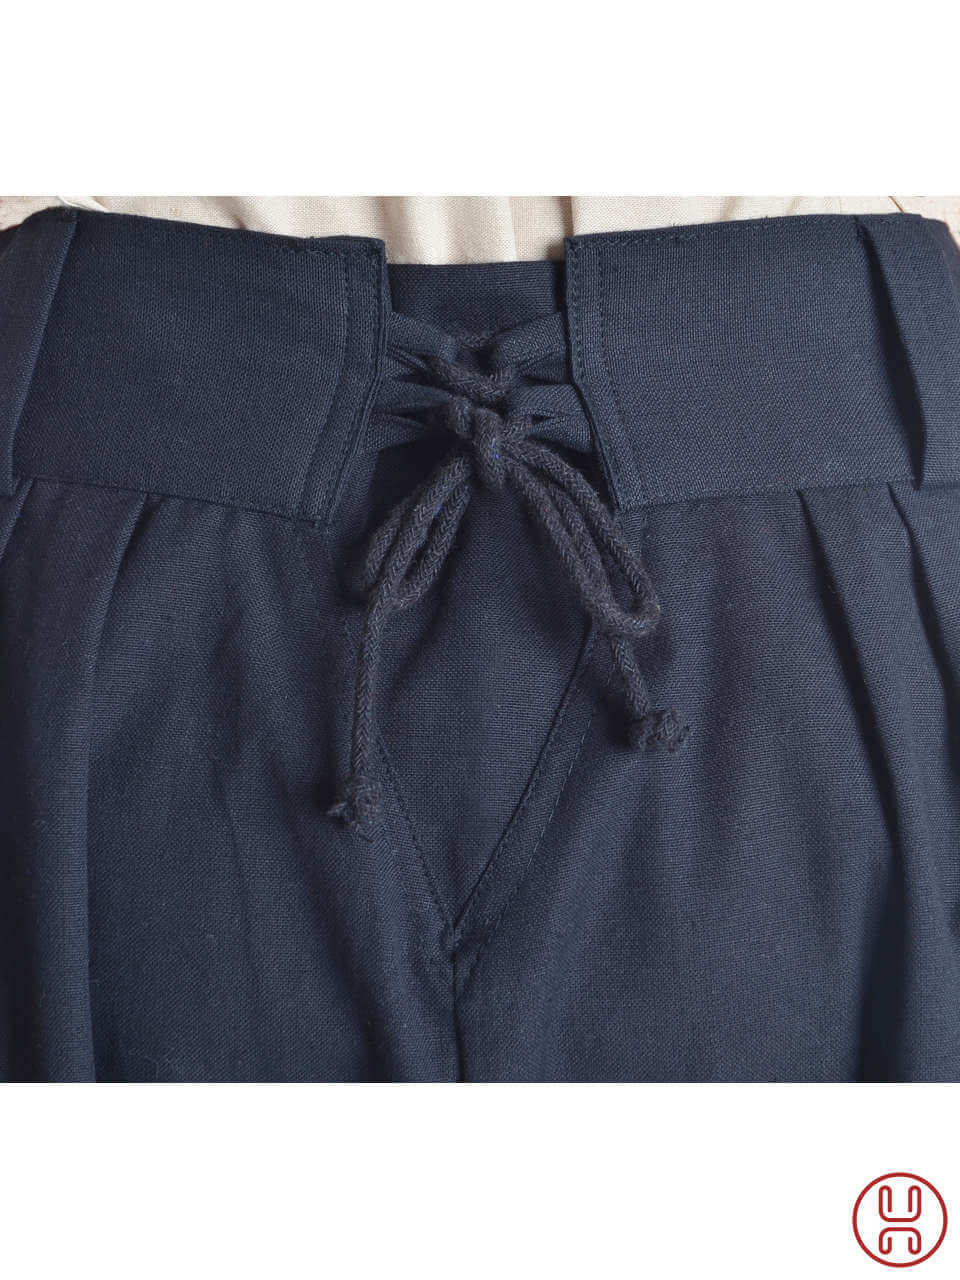 Medieval Viking trousers with strings - short